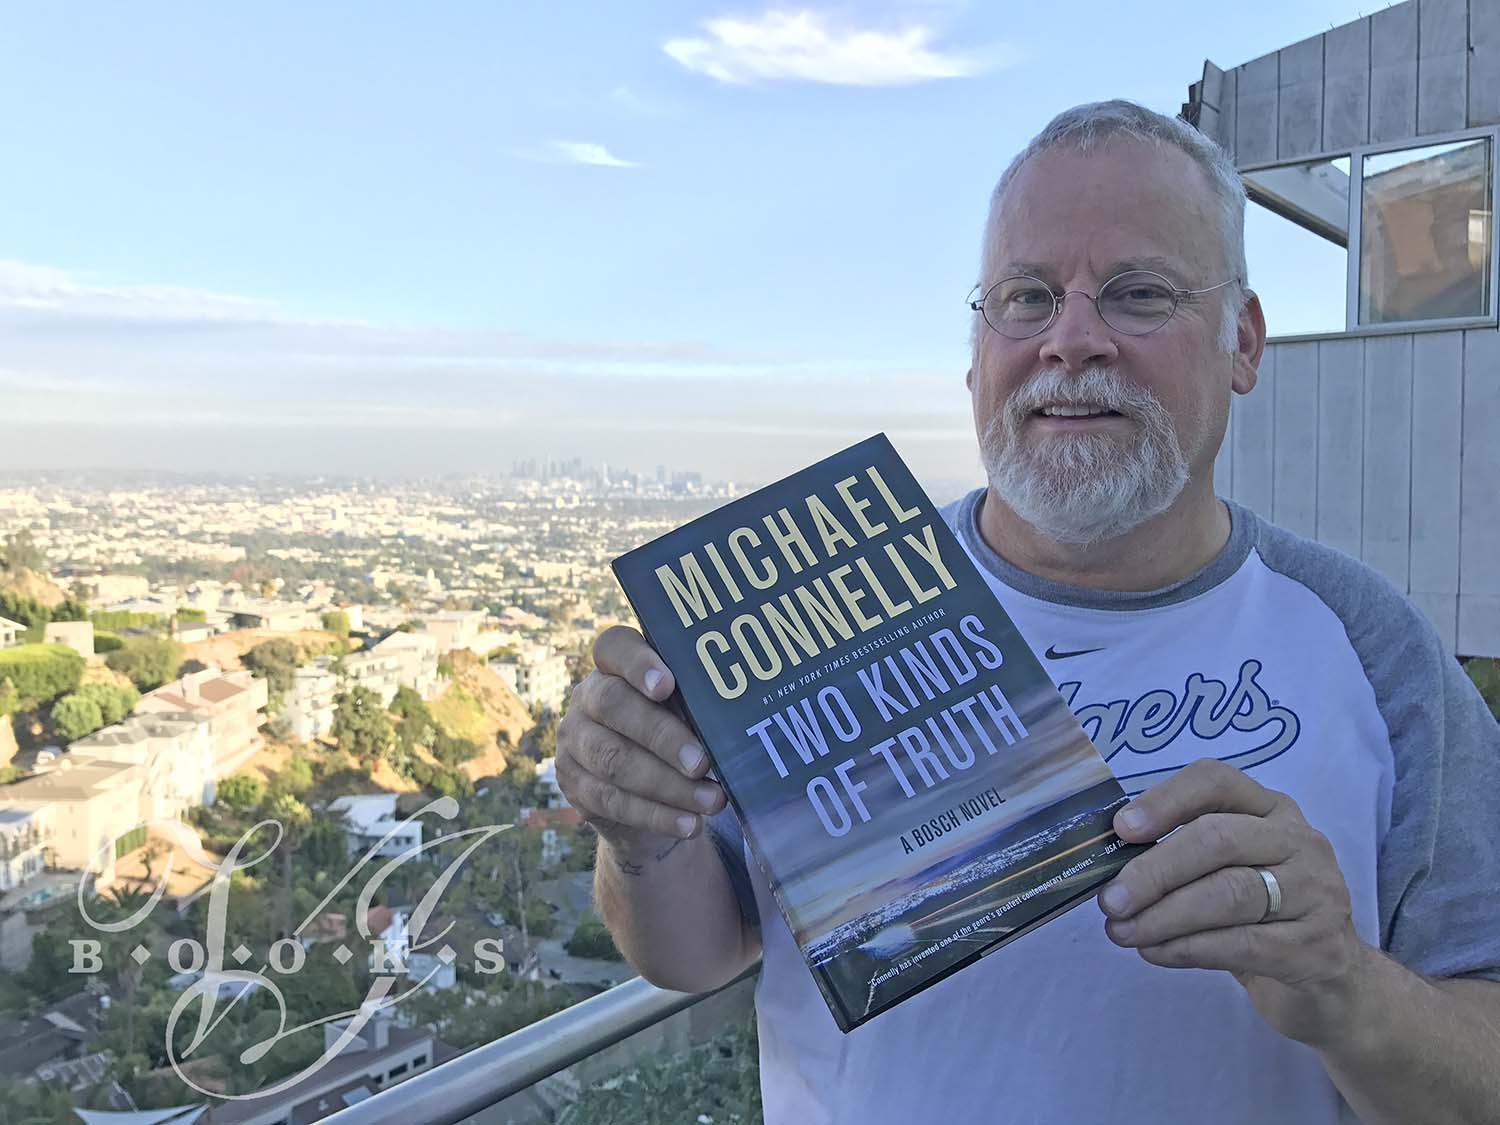 michael connelly  Author Michael Connelly Bio and Signed Books - VJ Books